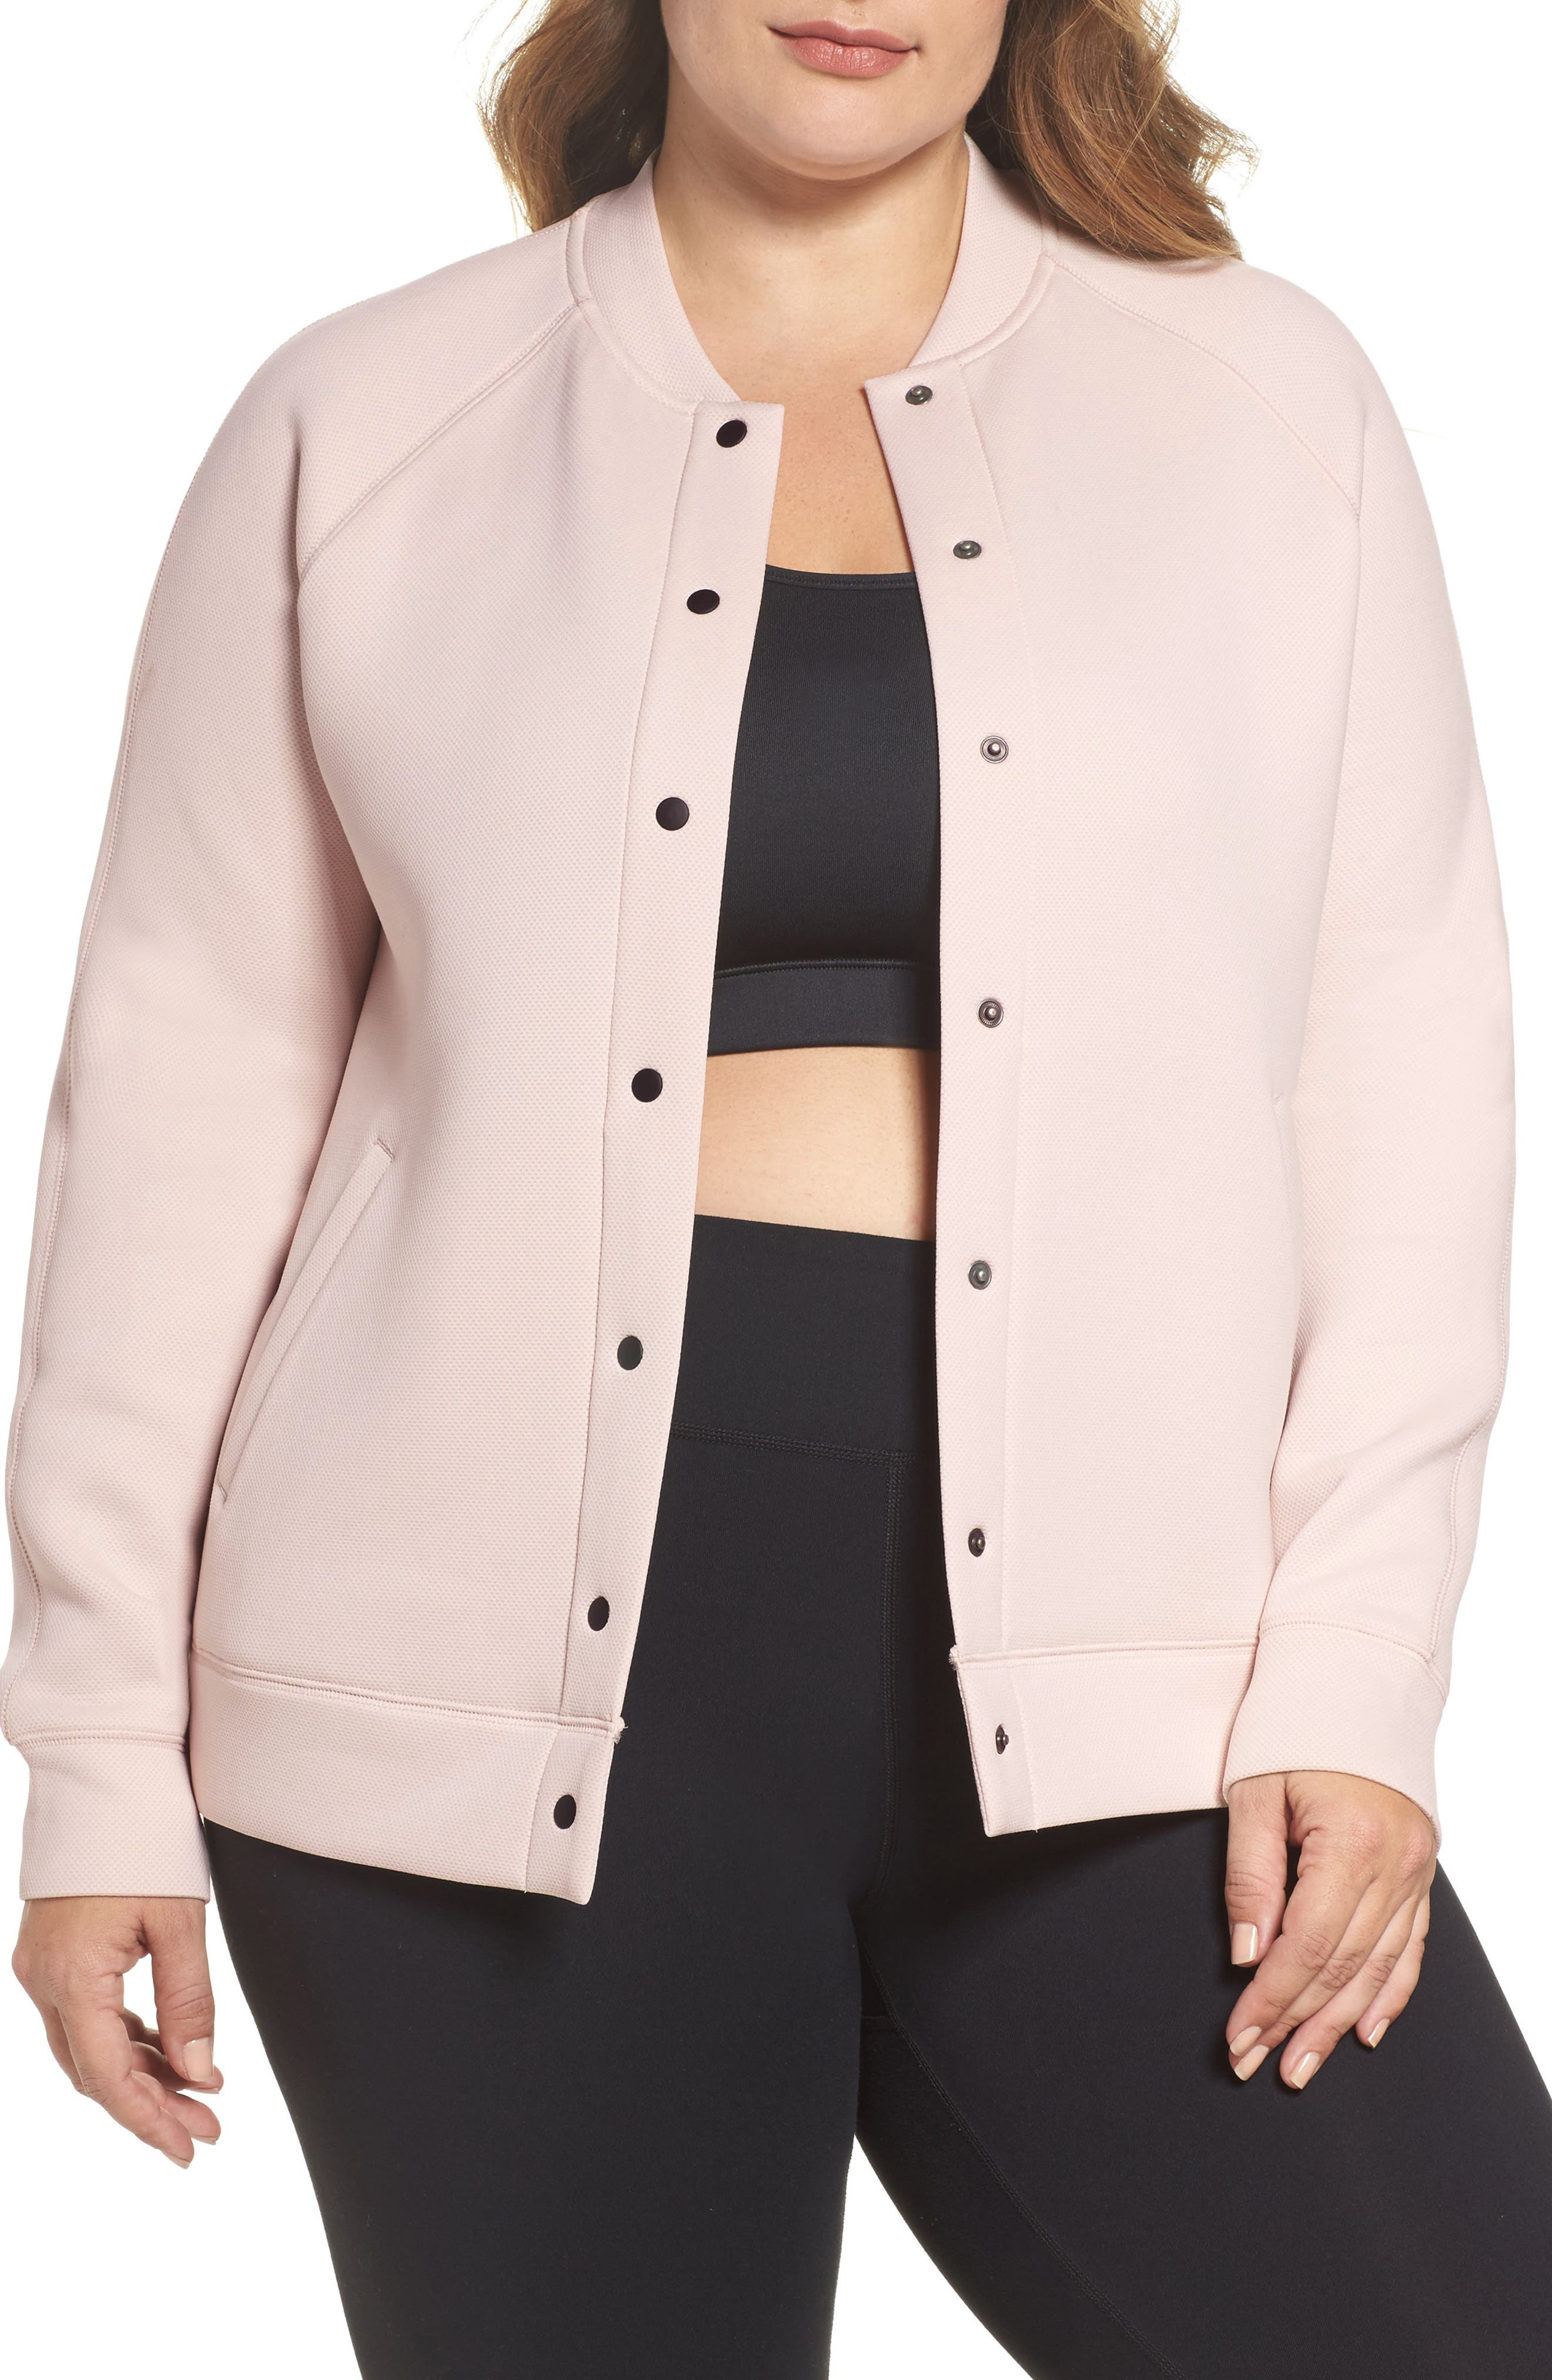 Arise Luxe Bomber Jacket,                             Main thumbnail 1, color,                             680